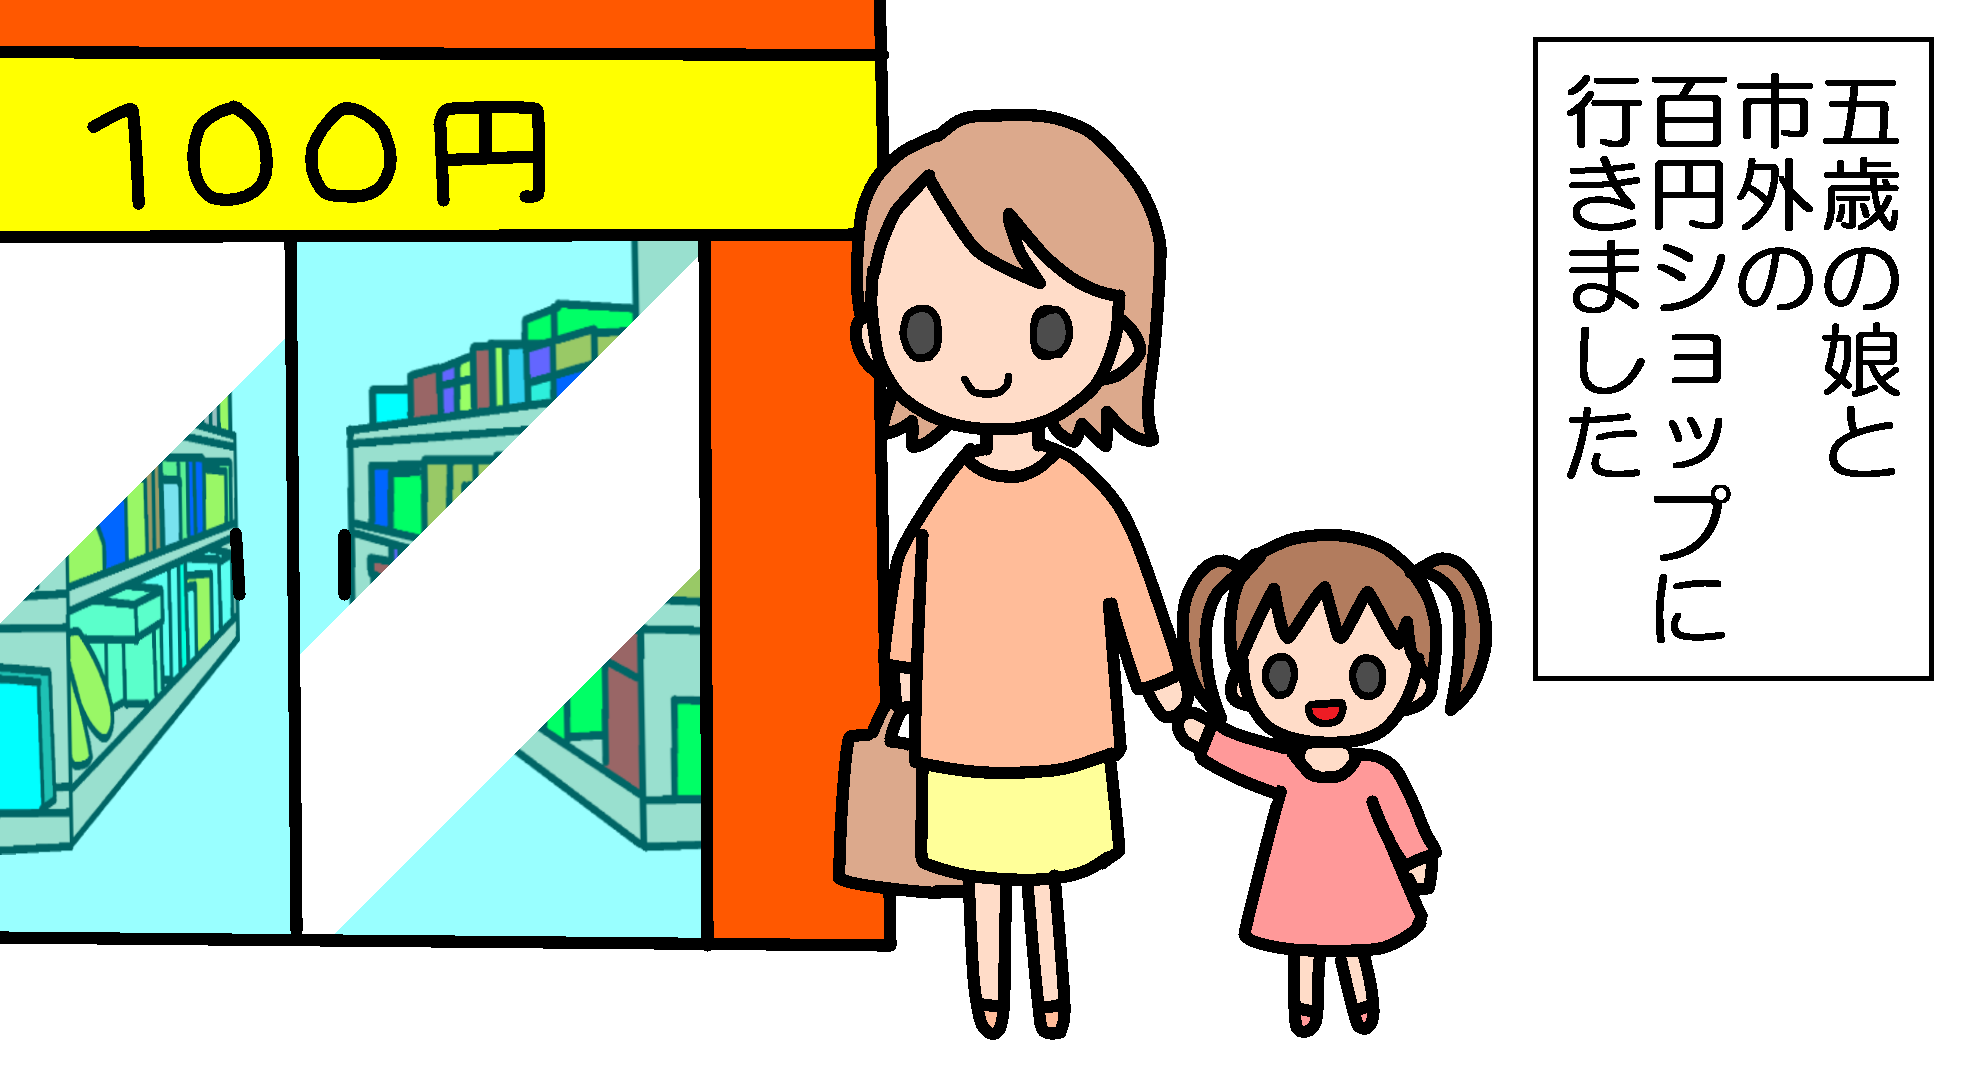 yotubeのイラスト_a0040621_14035652.png